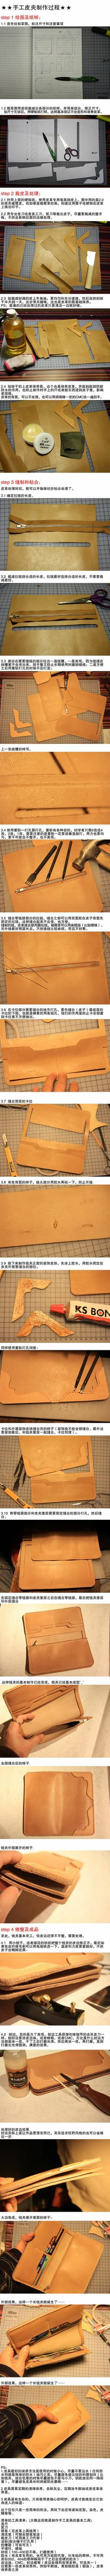 no Idea what it says but the pictures are helpful - Ultra-detailed leather wallet making tutorial